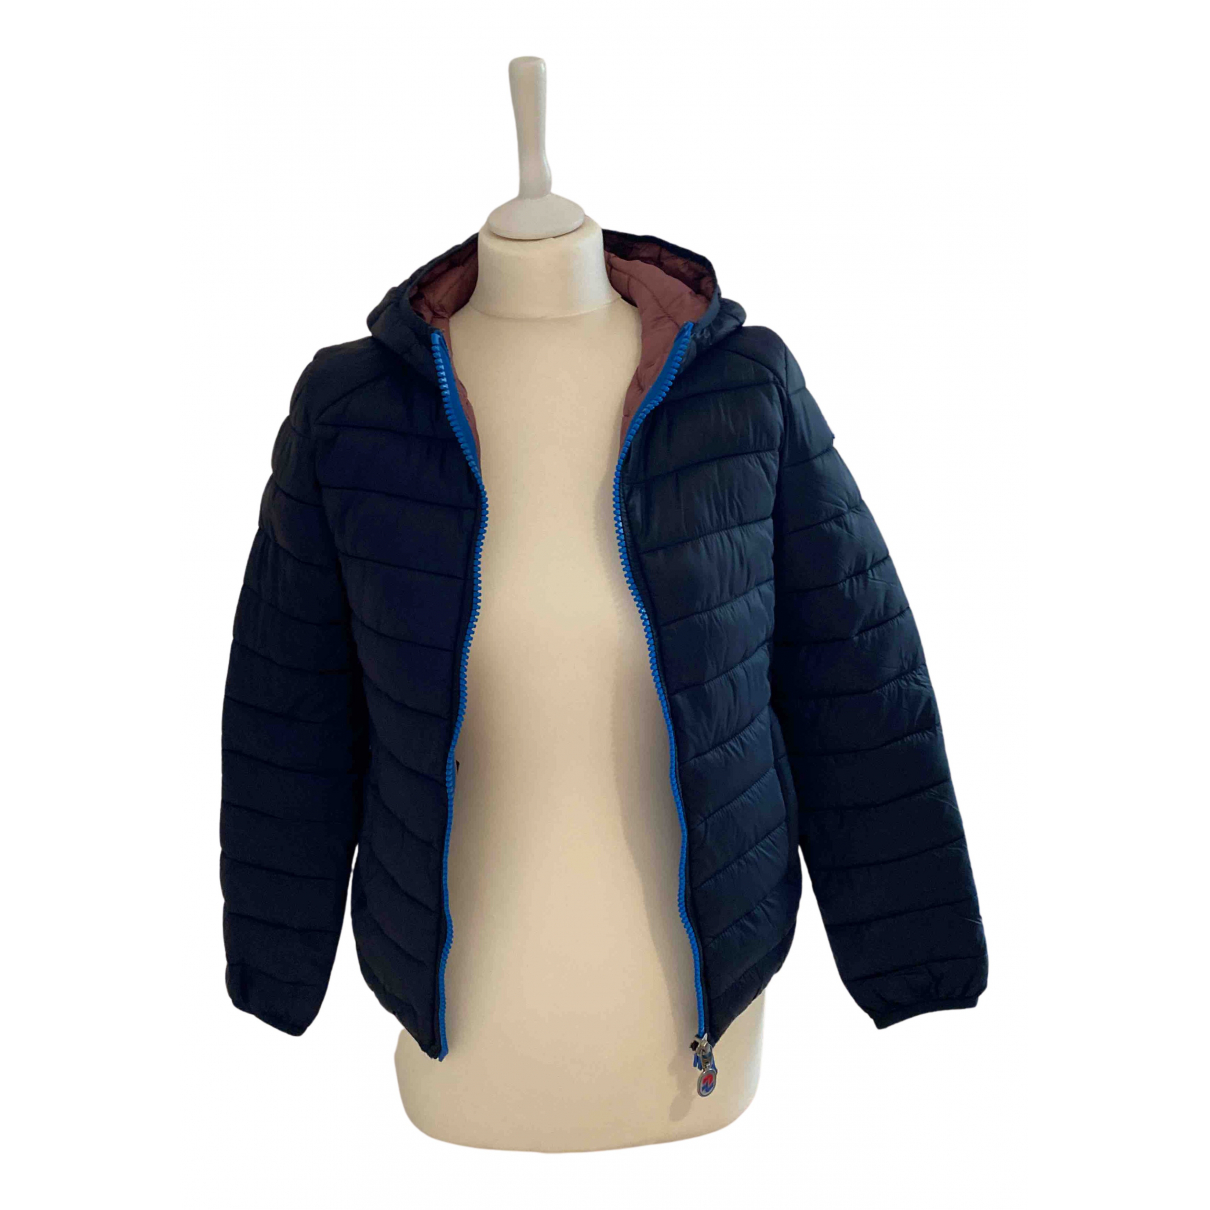 Invicta N Blue jacket & coat for Kids 12 years - XS FR